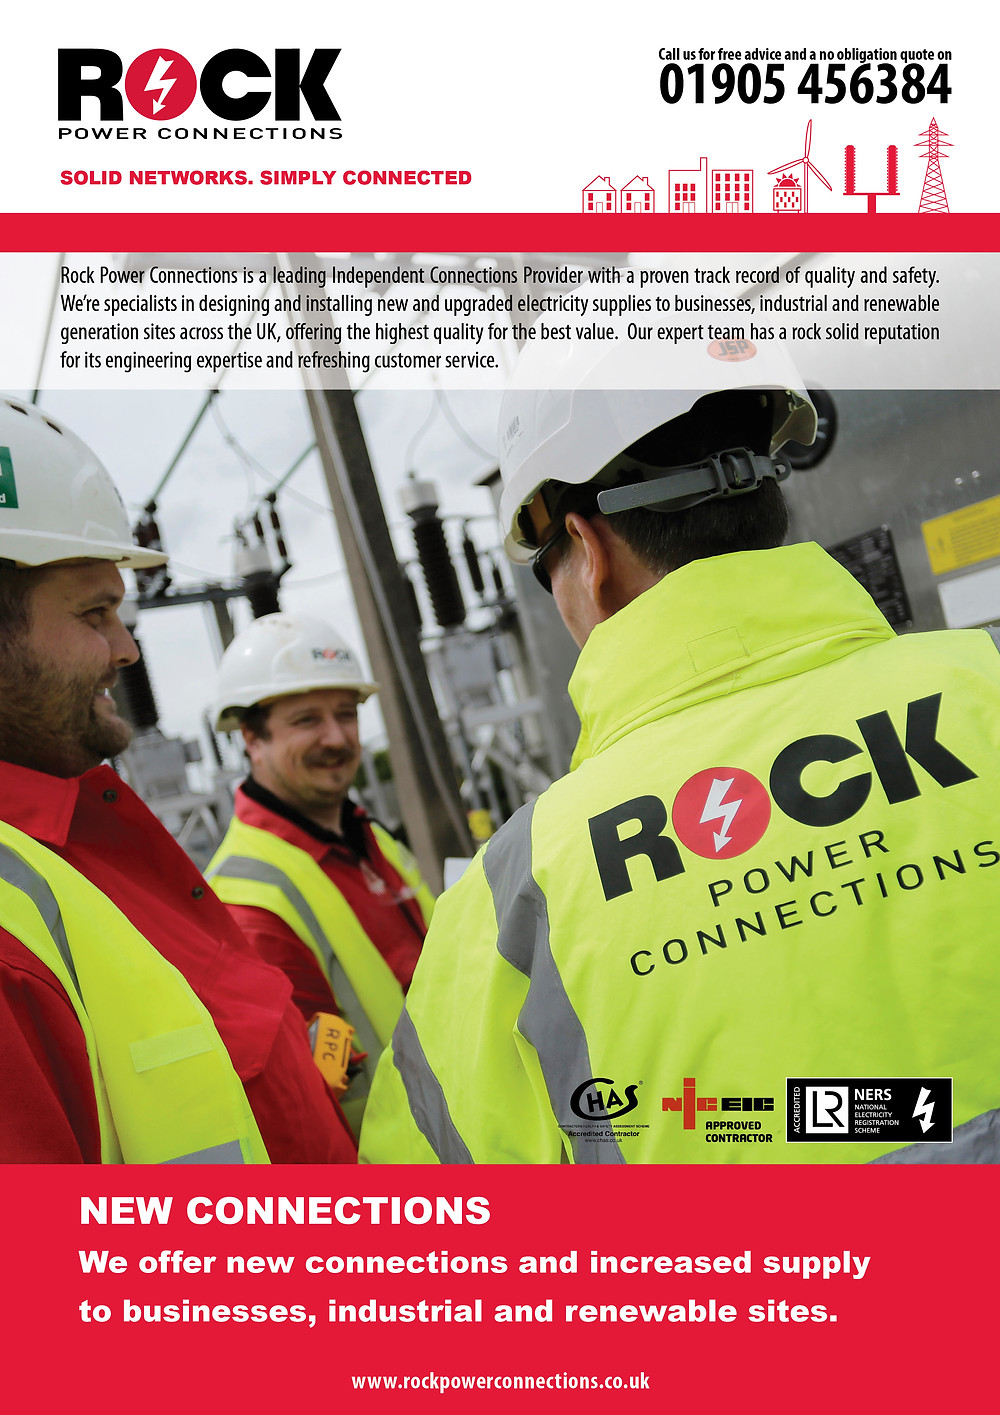 Whether it's an industrial site that needs an upgraded supply or an ambitious plan for a renewables generation project - Rock Power Connections has put together a helpful guide that makes sense of the electricity connection process, in a simple and easy to understand factsheet.